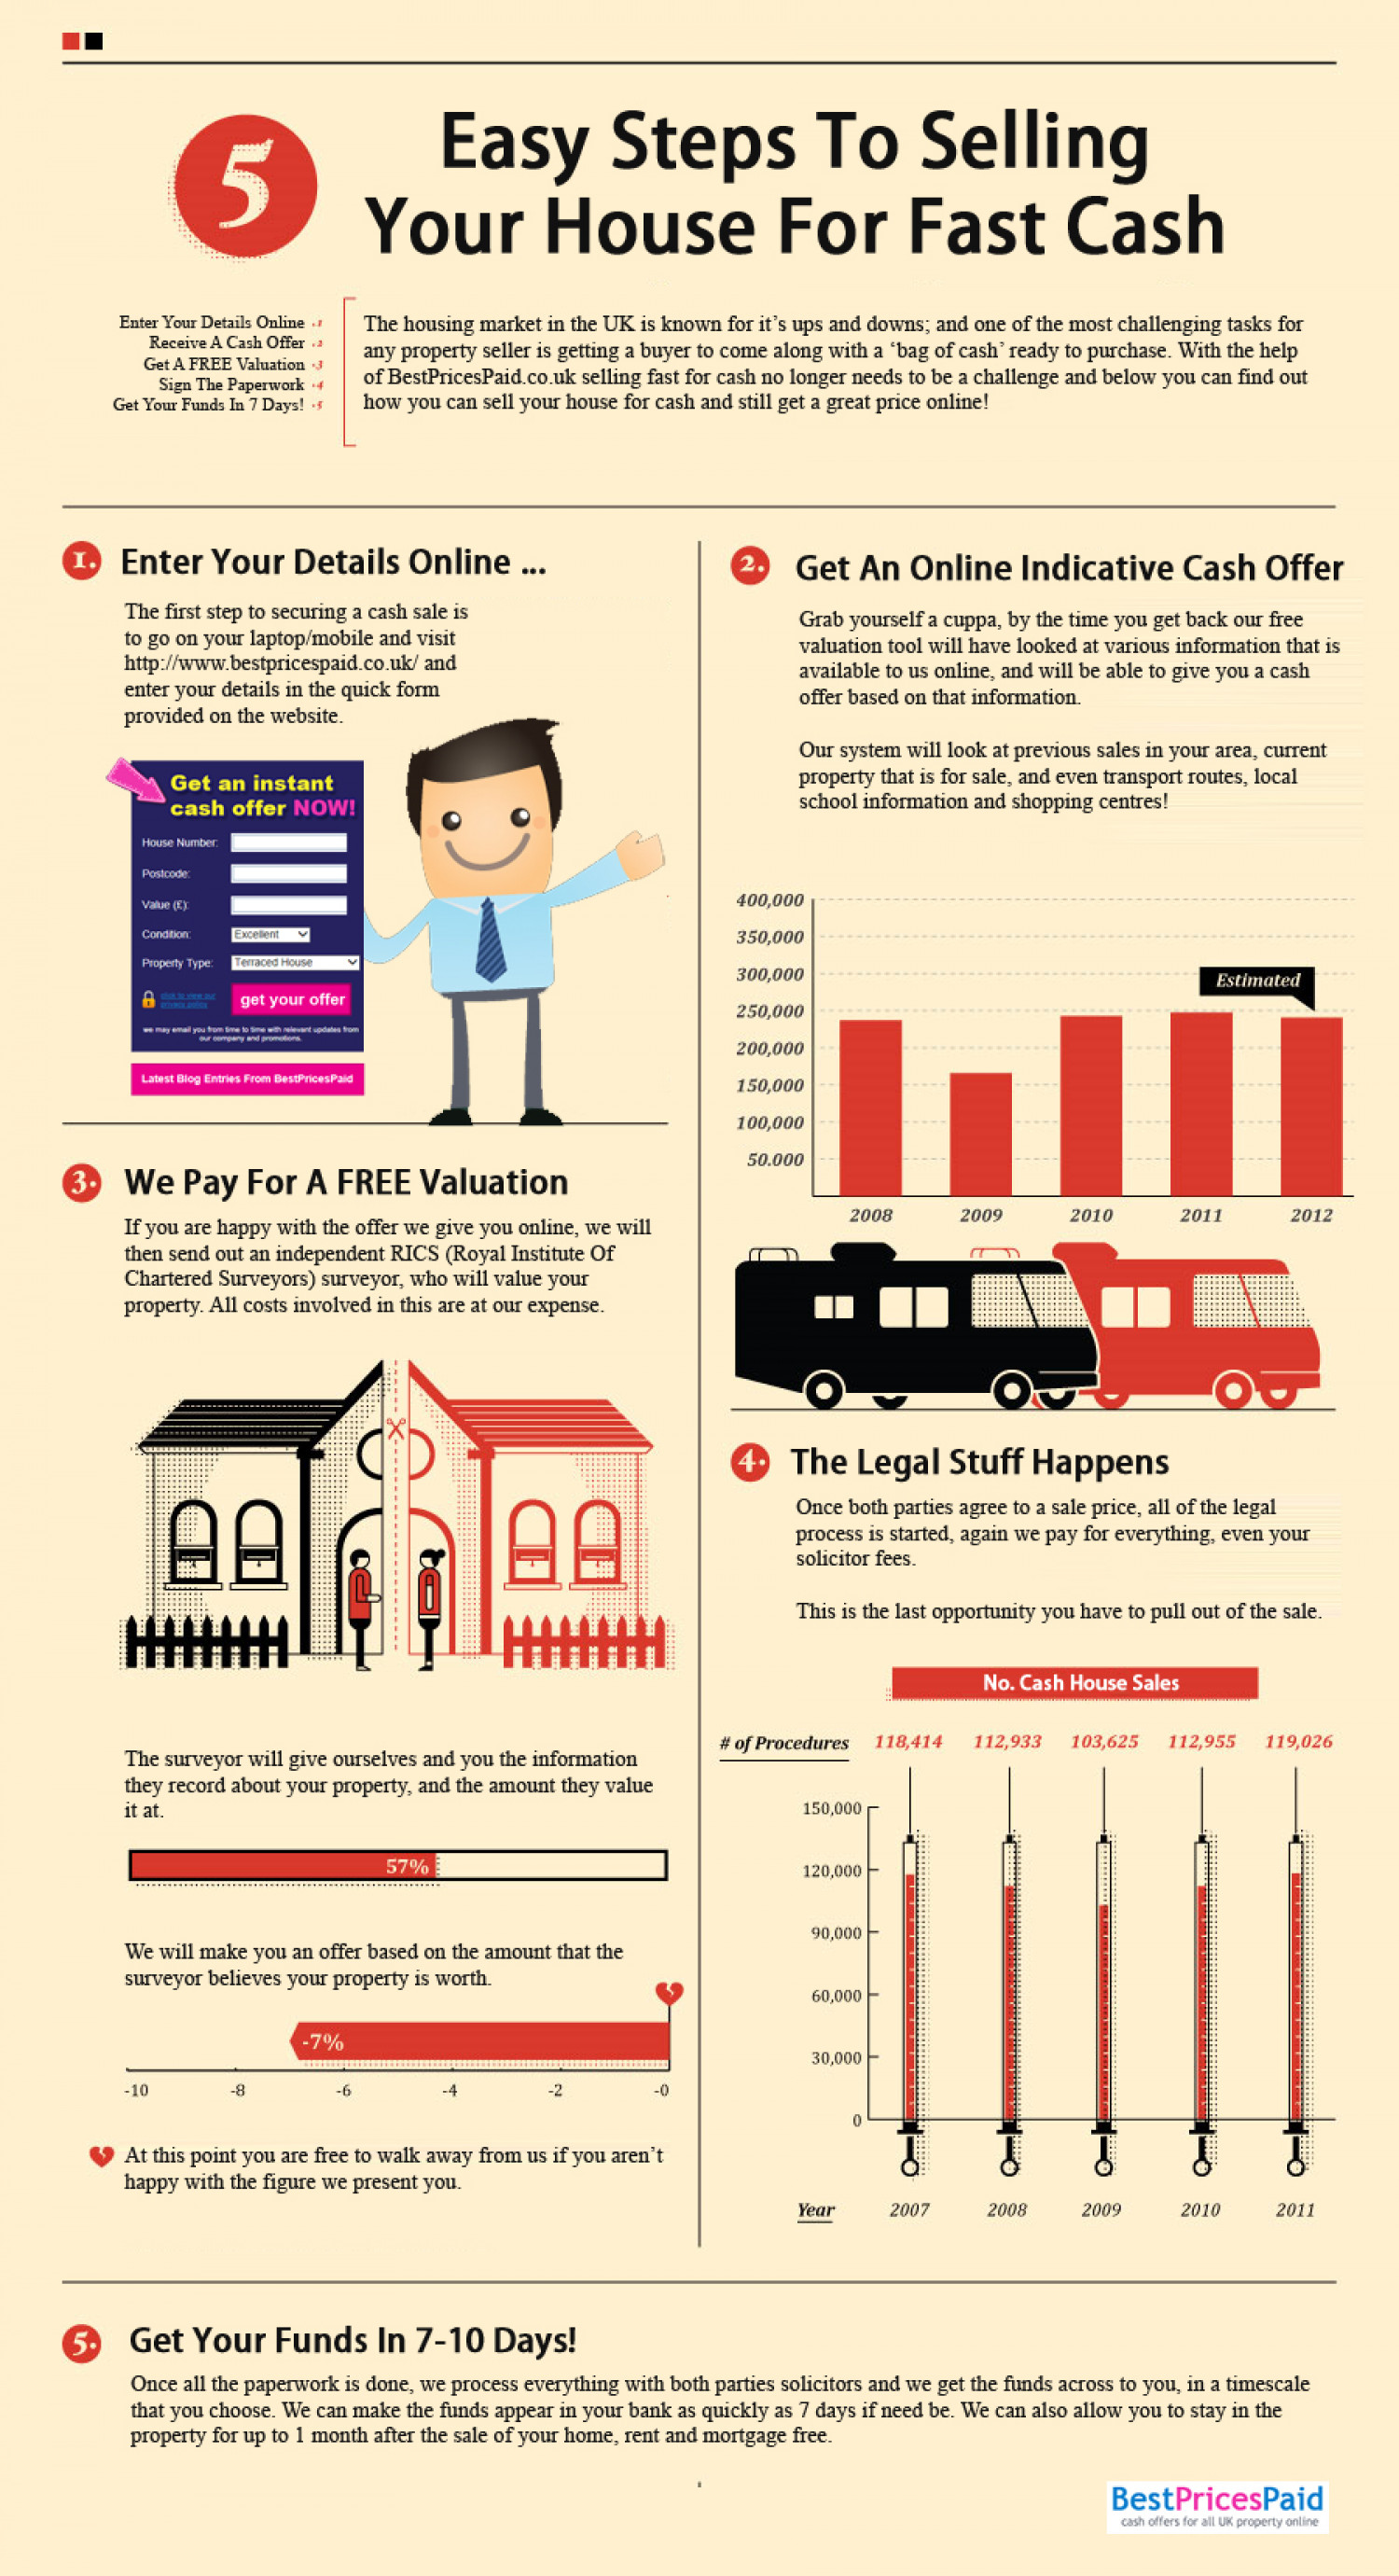 Selling Your House Fast For Cash Infographic